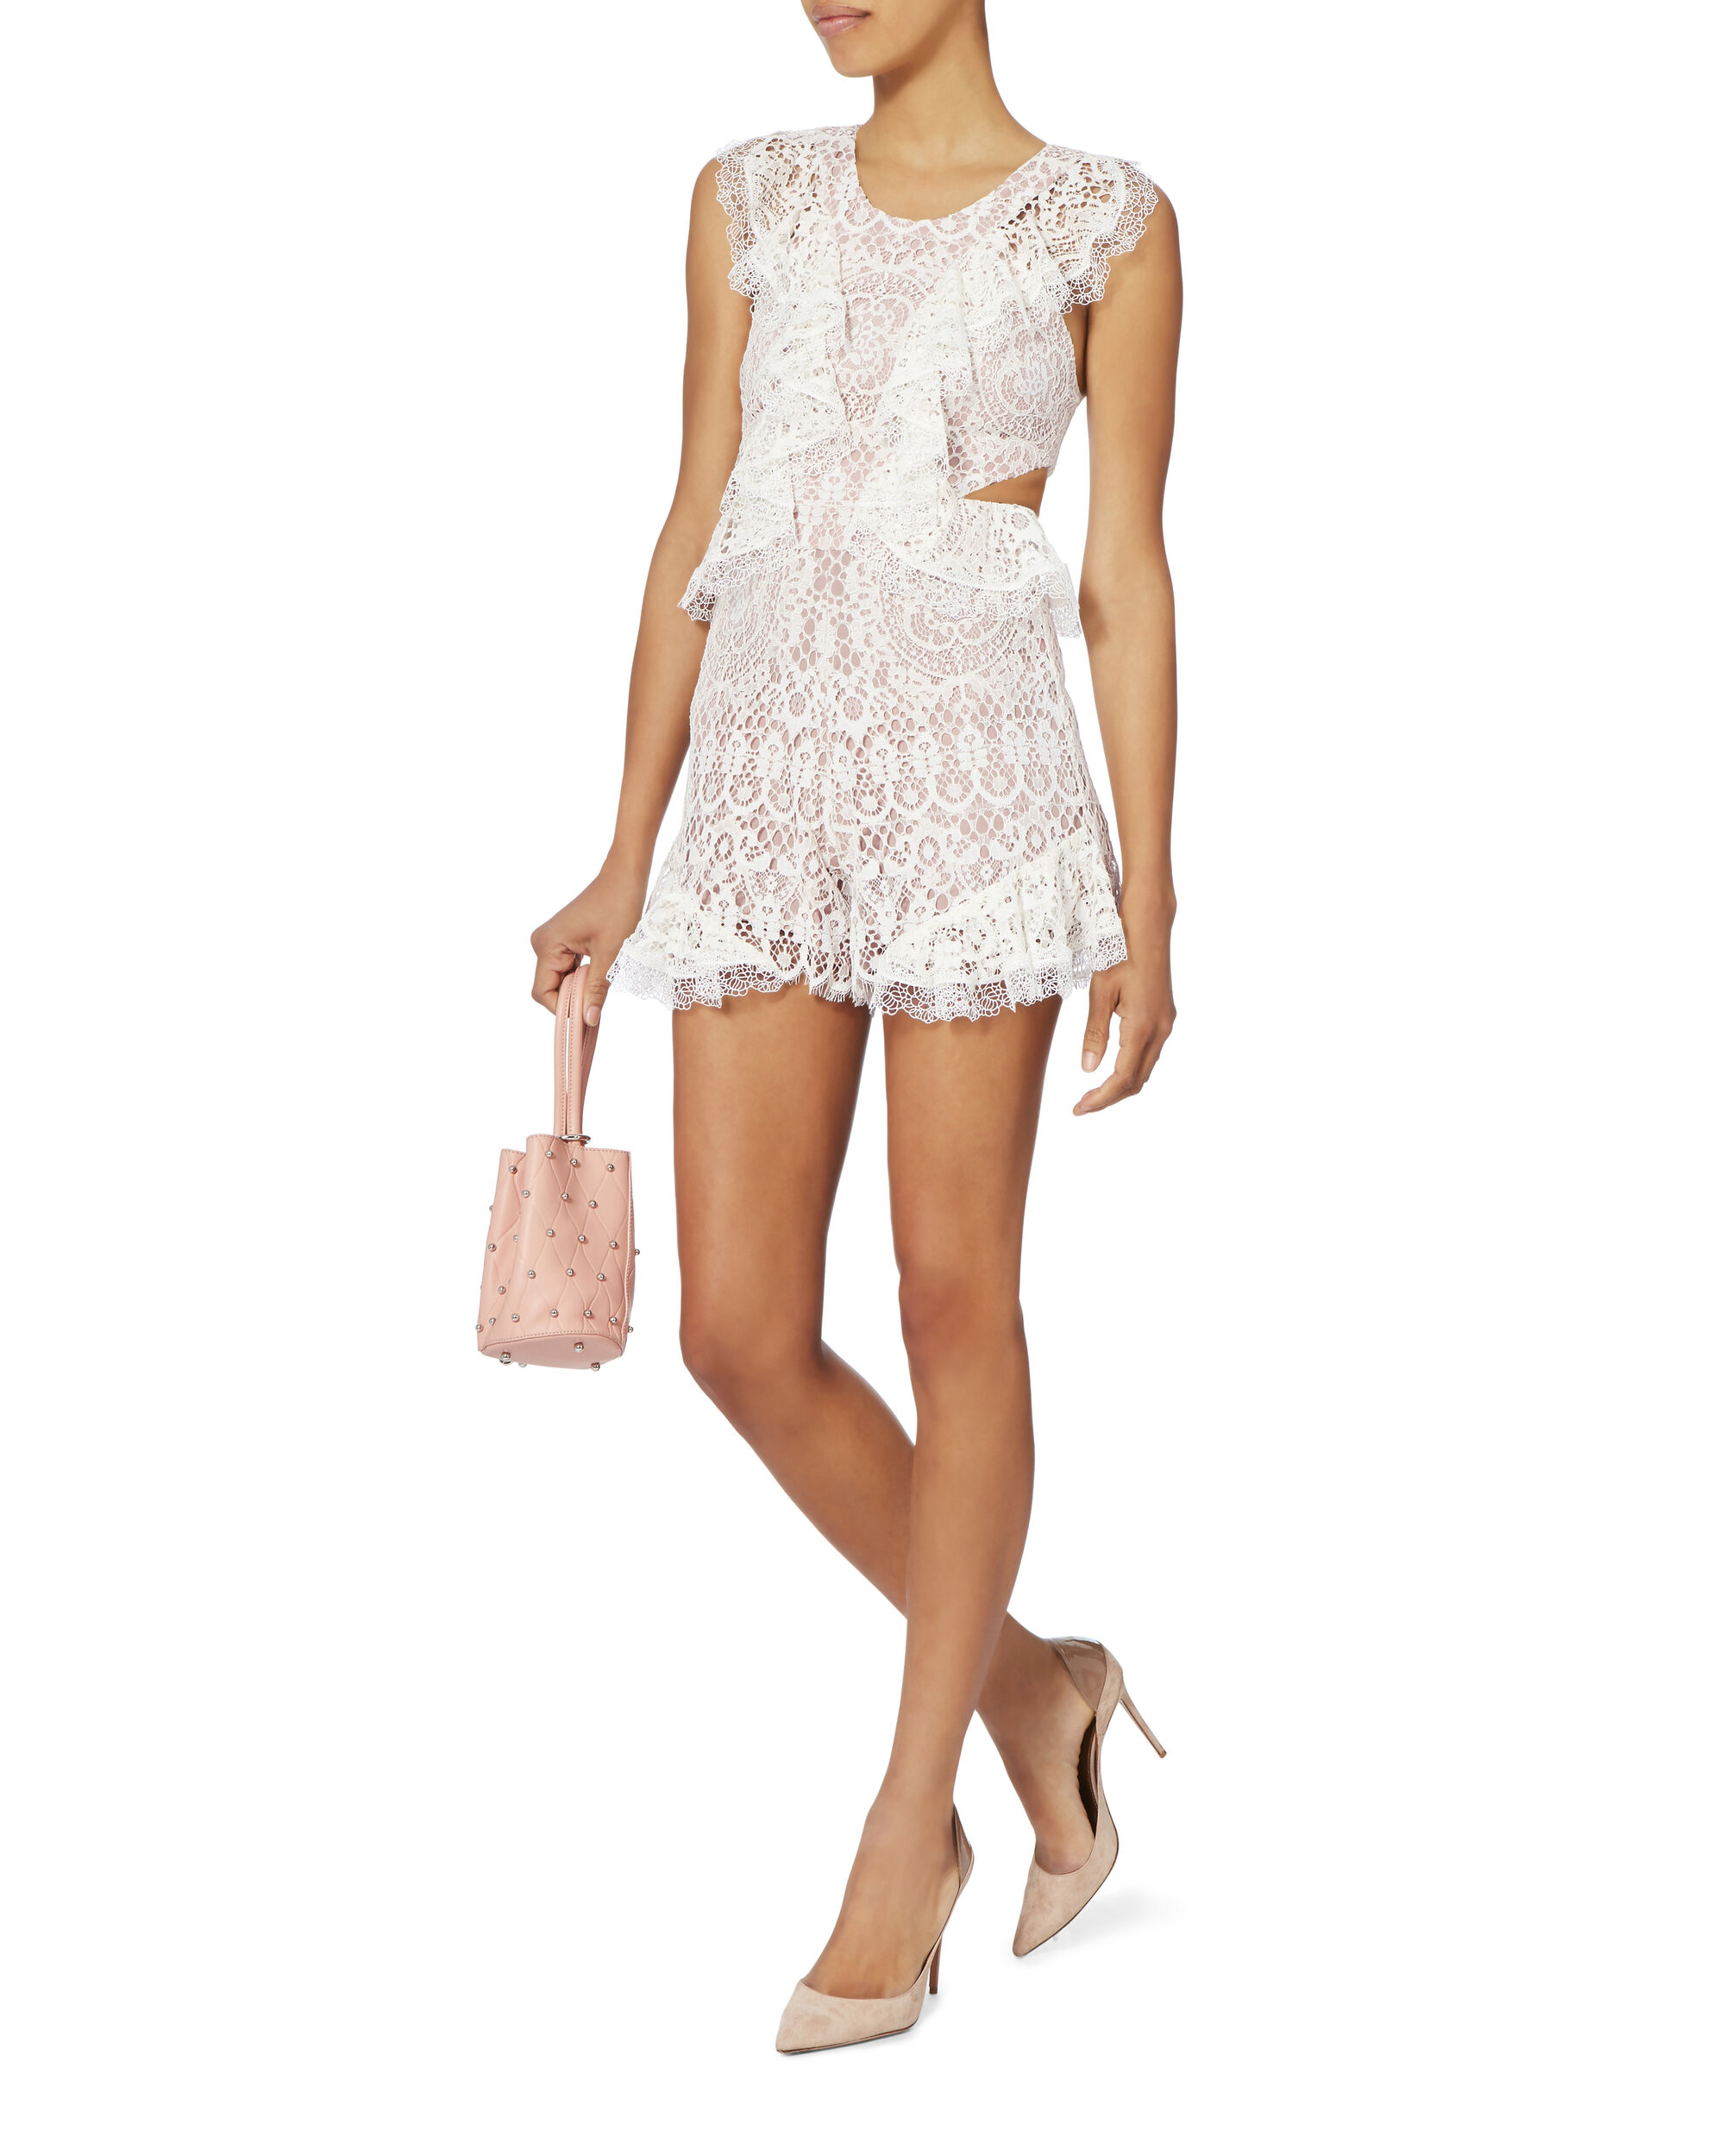 Bar White Lace Romper, IVORY, hi-res